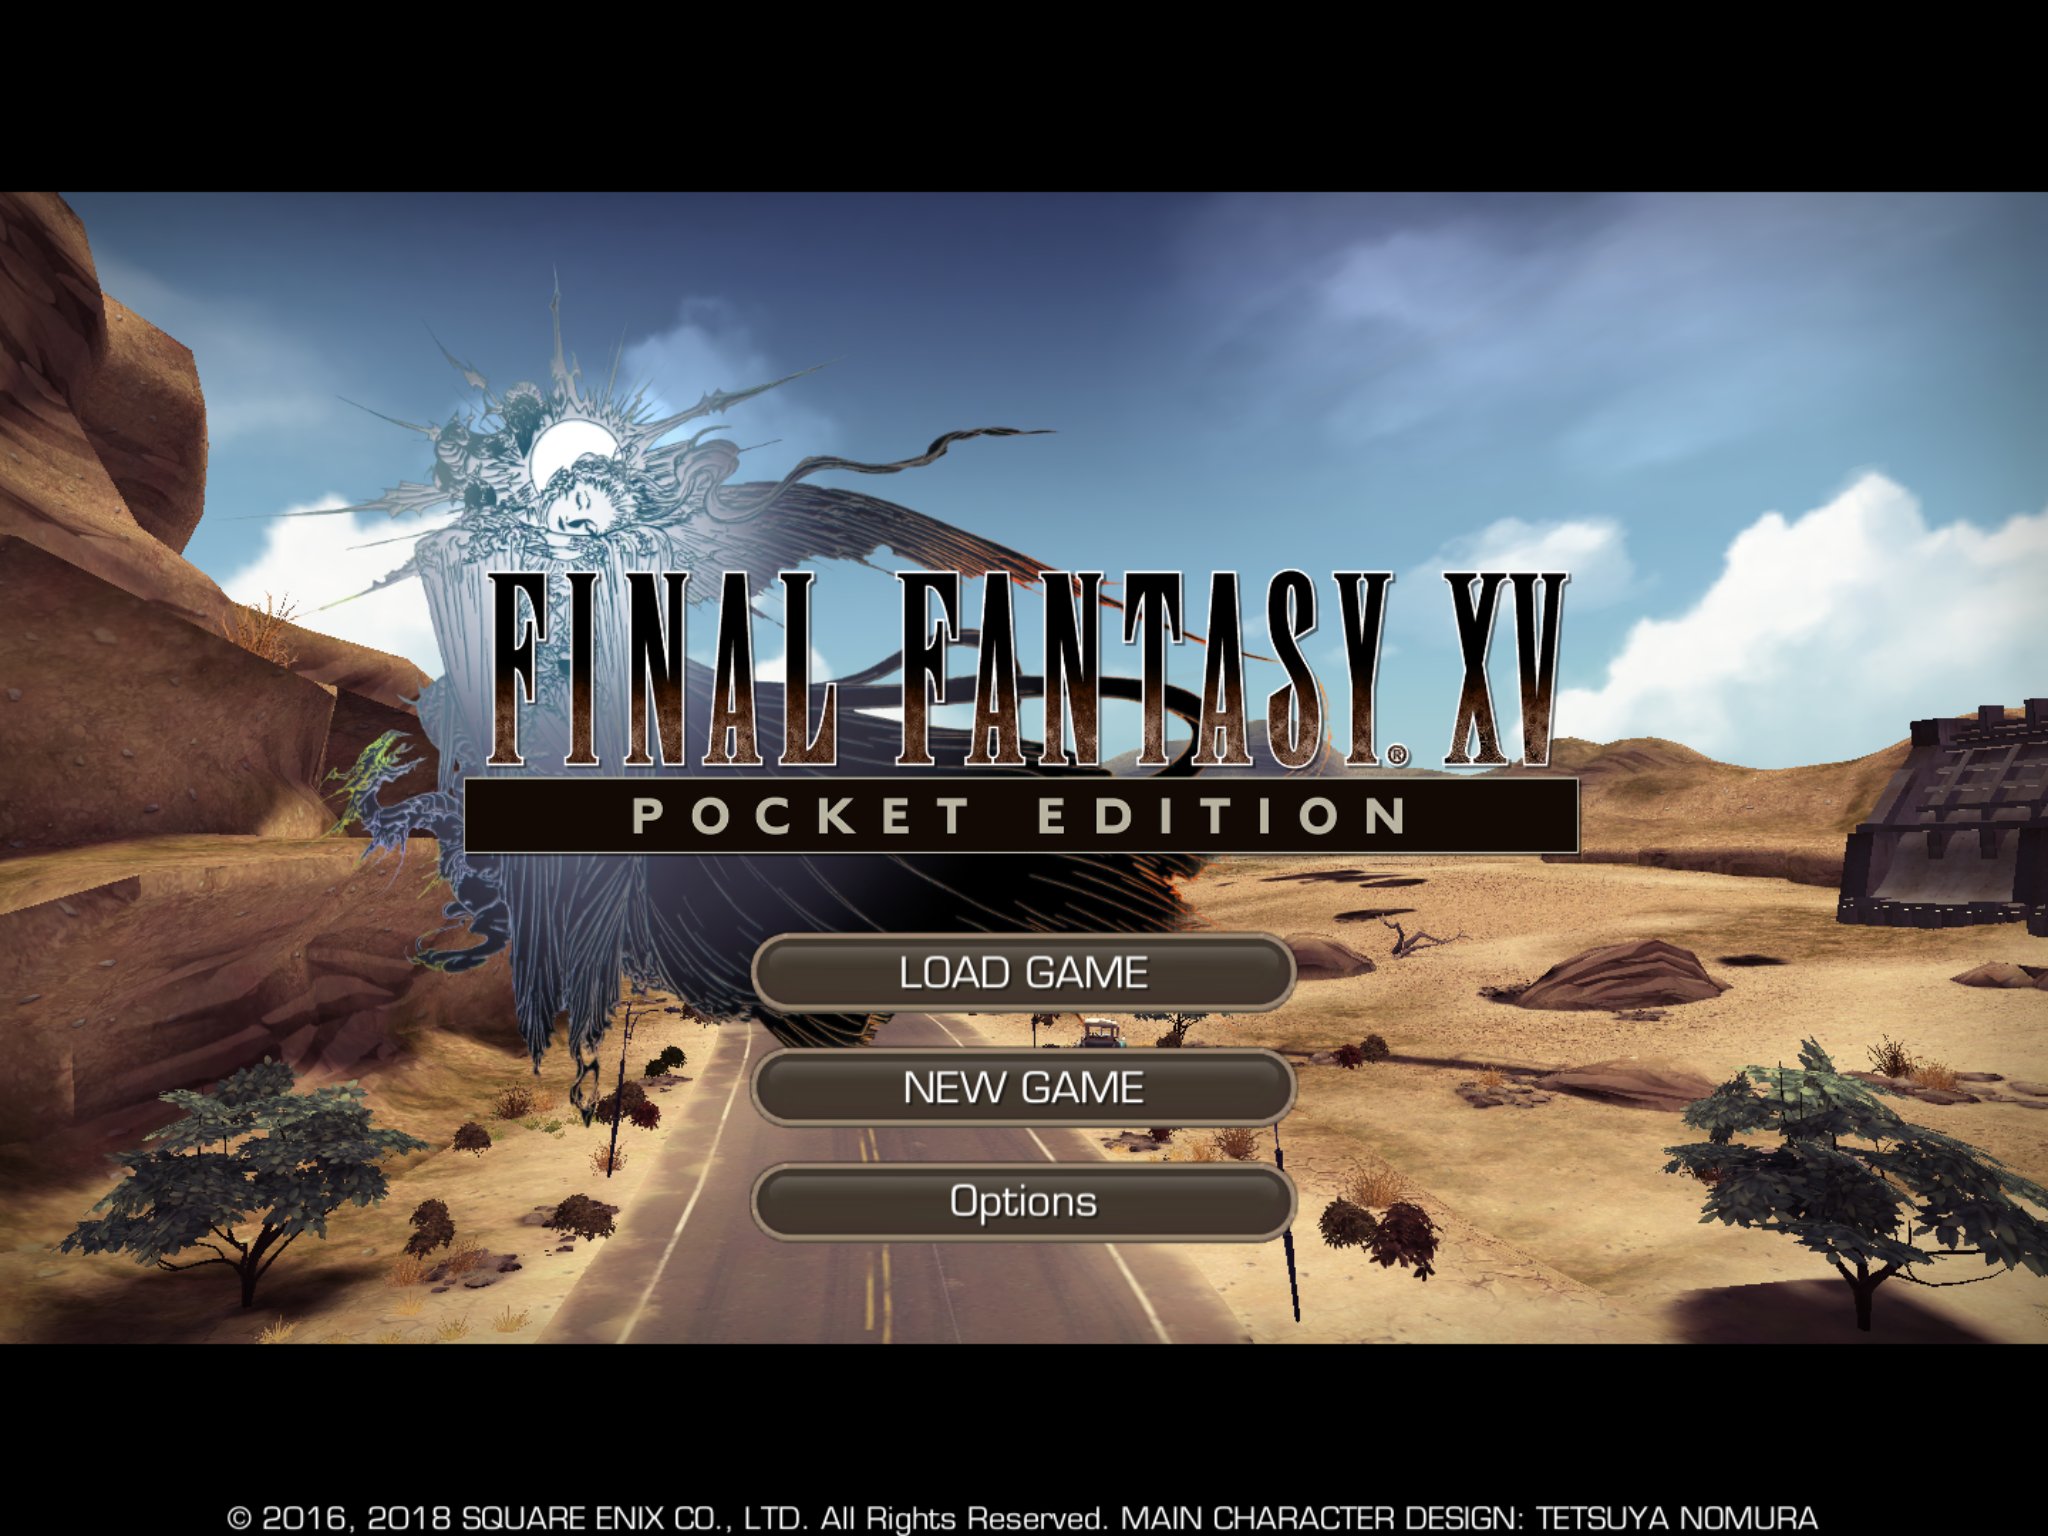 Final Fantasy XV Pocket Edition cheats and tips - Best tips for battling monsters